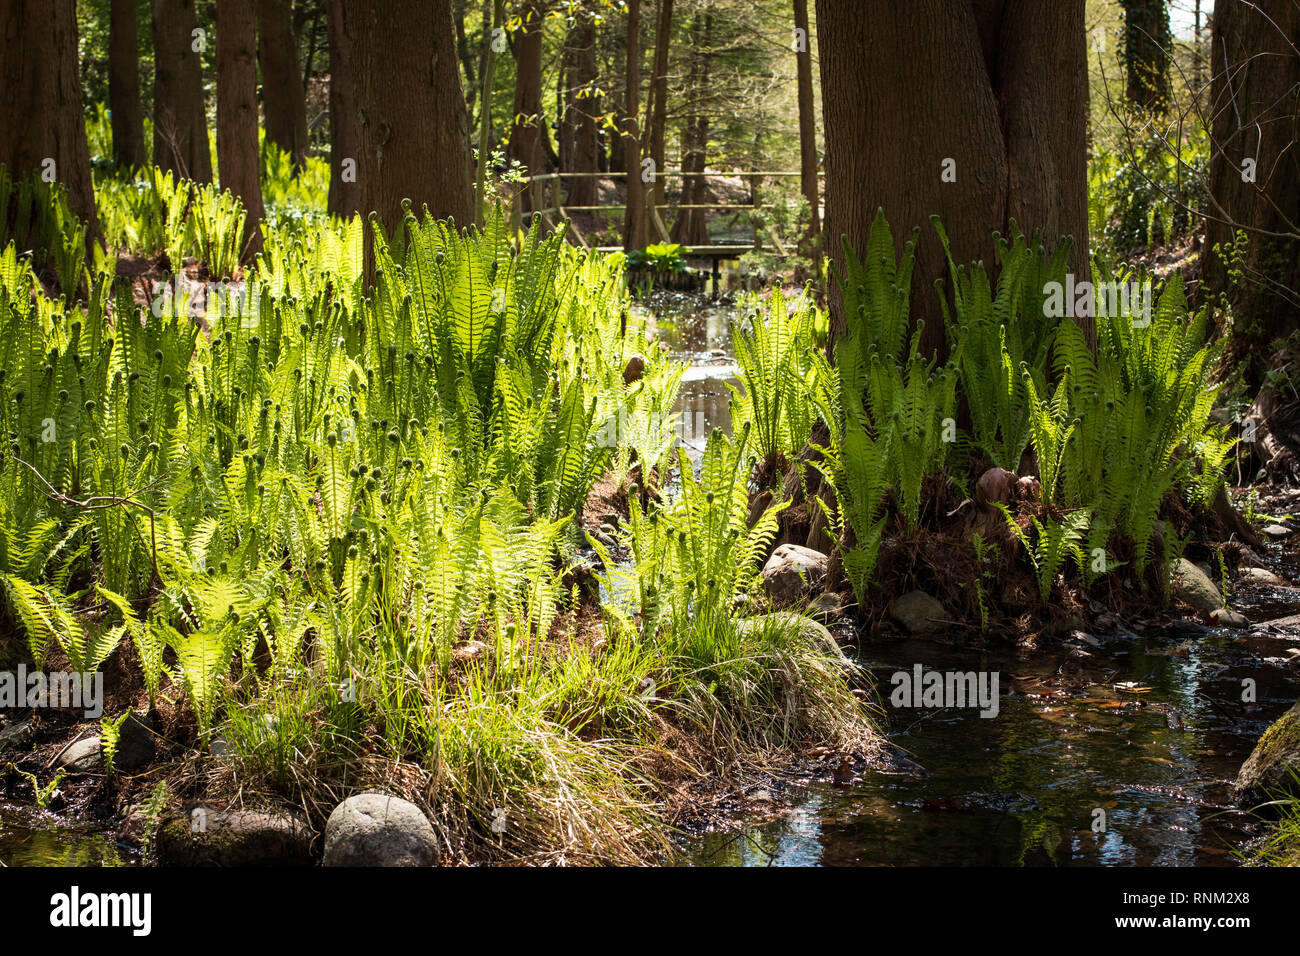 Ostrich Plume Fern, Ostrich Fern (Matteuccia struthiopteris). Plants at a stream in a forest in spring. Germany - Stock Image